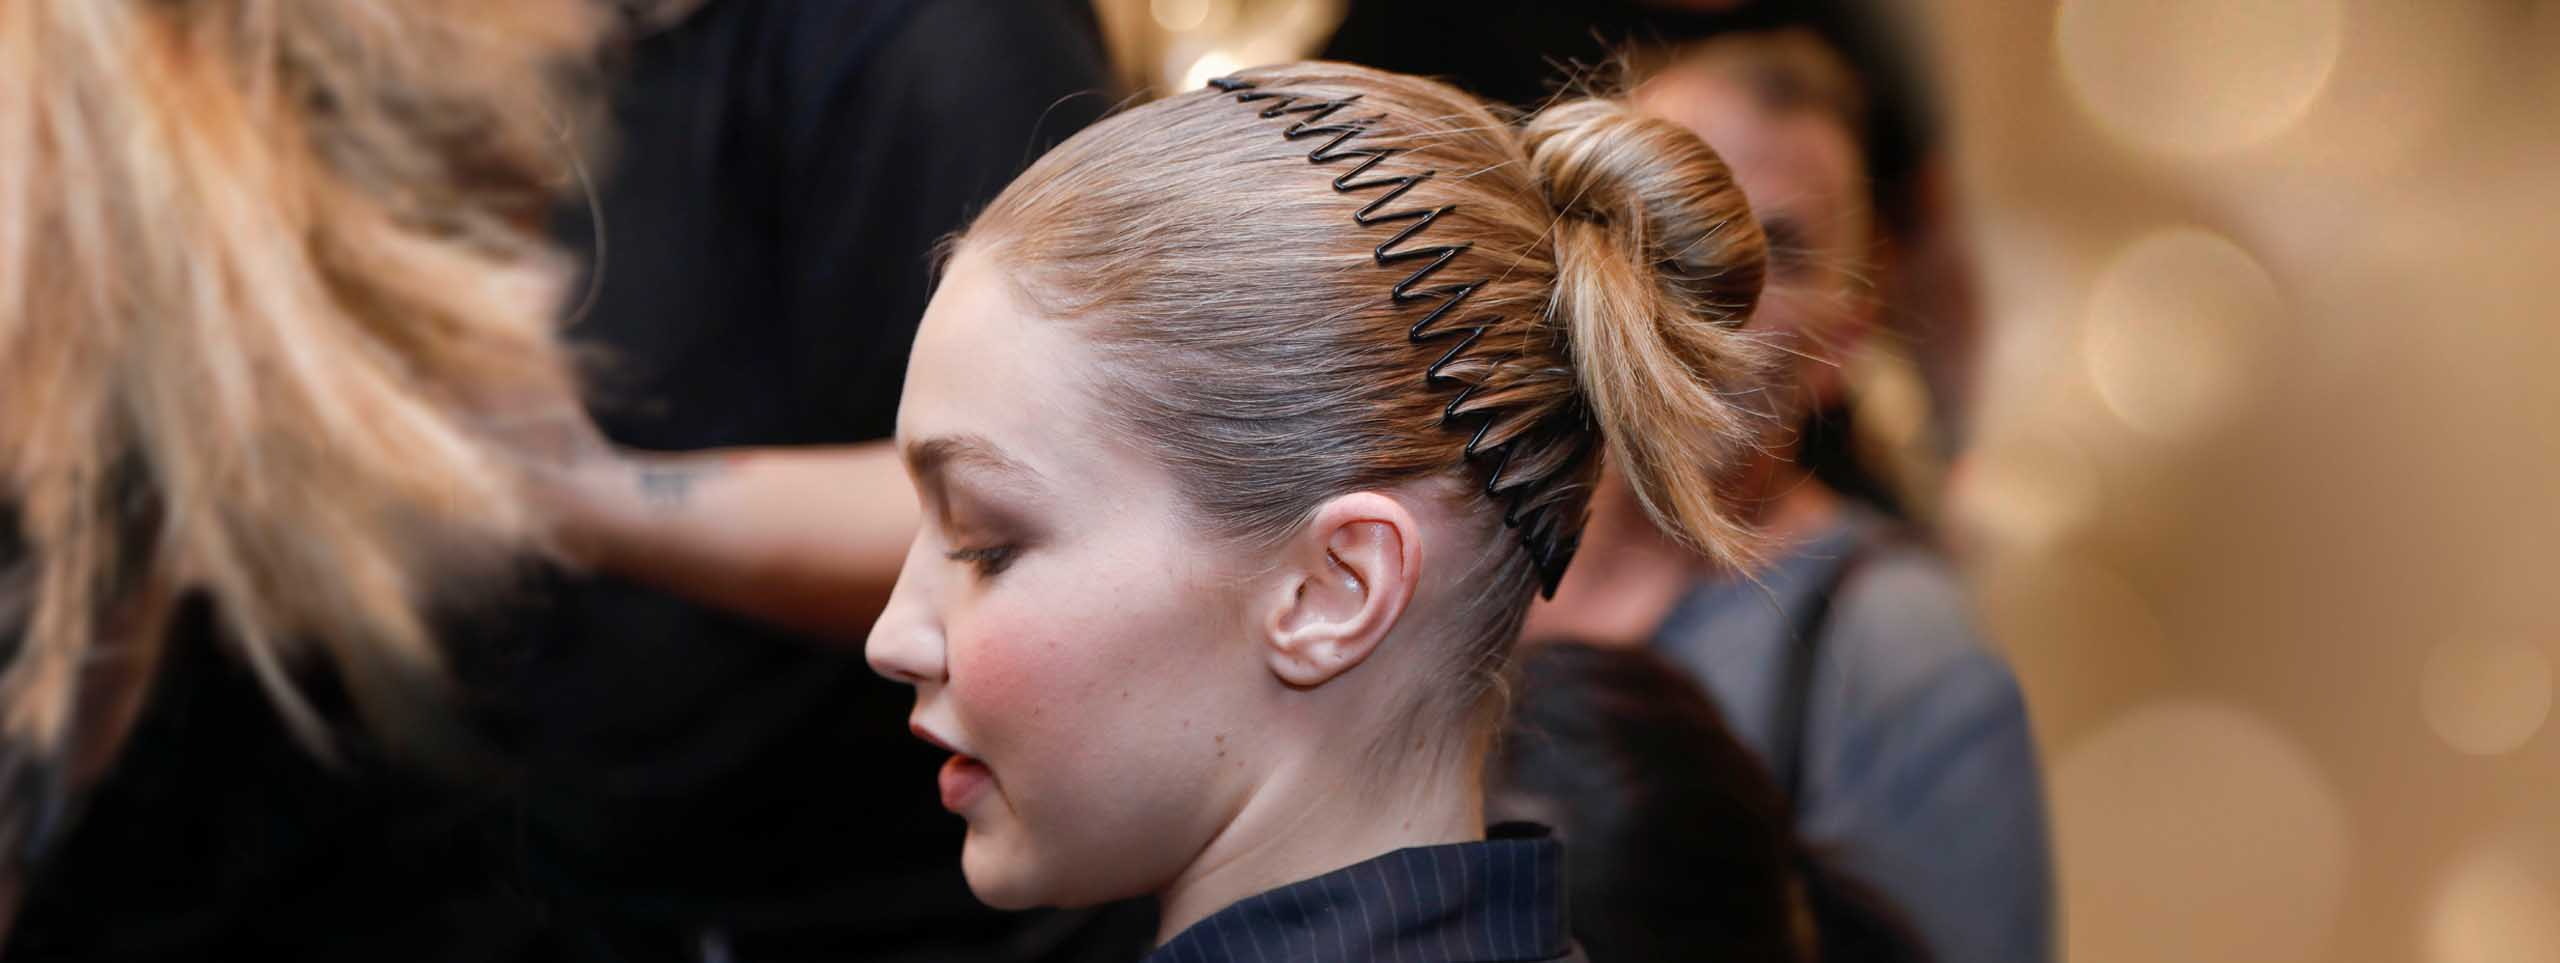 Recent Zig Zag Ponytail Updo Hairstyles In The 90S Zig Zag Headband Is Back (View 16 of 20)